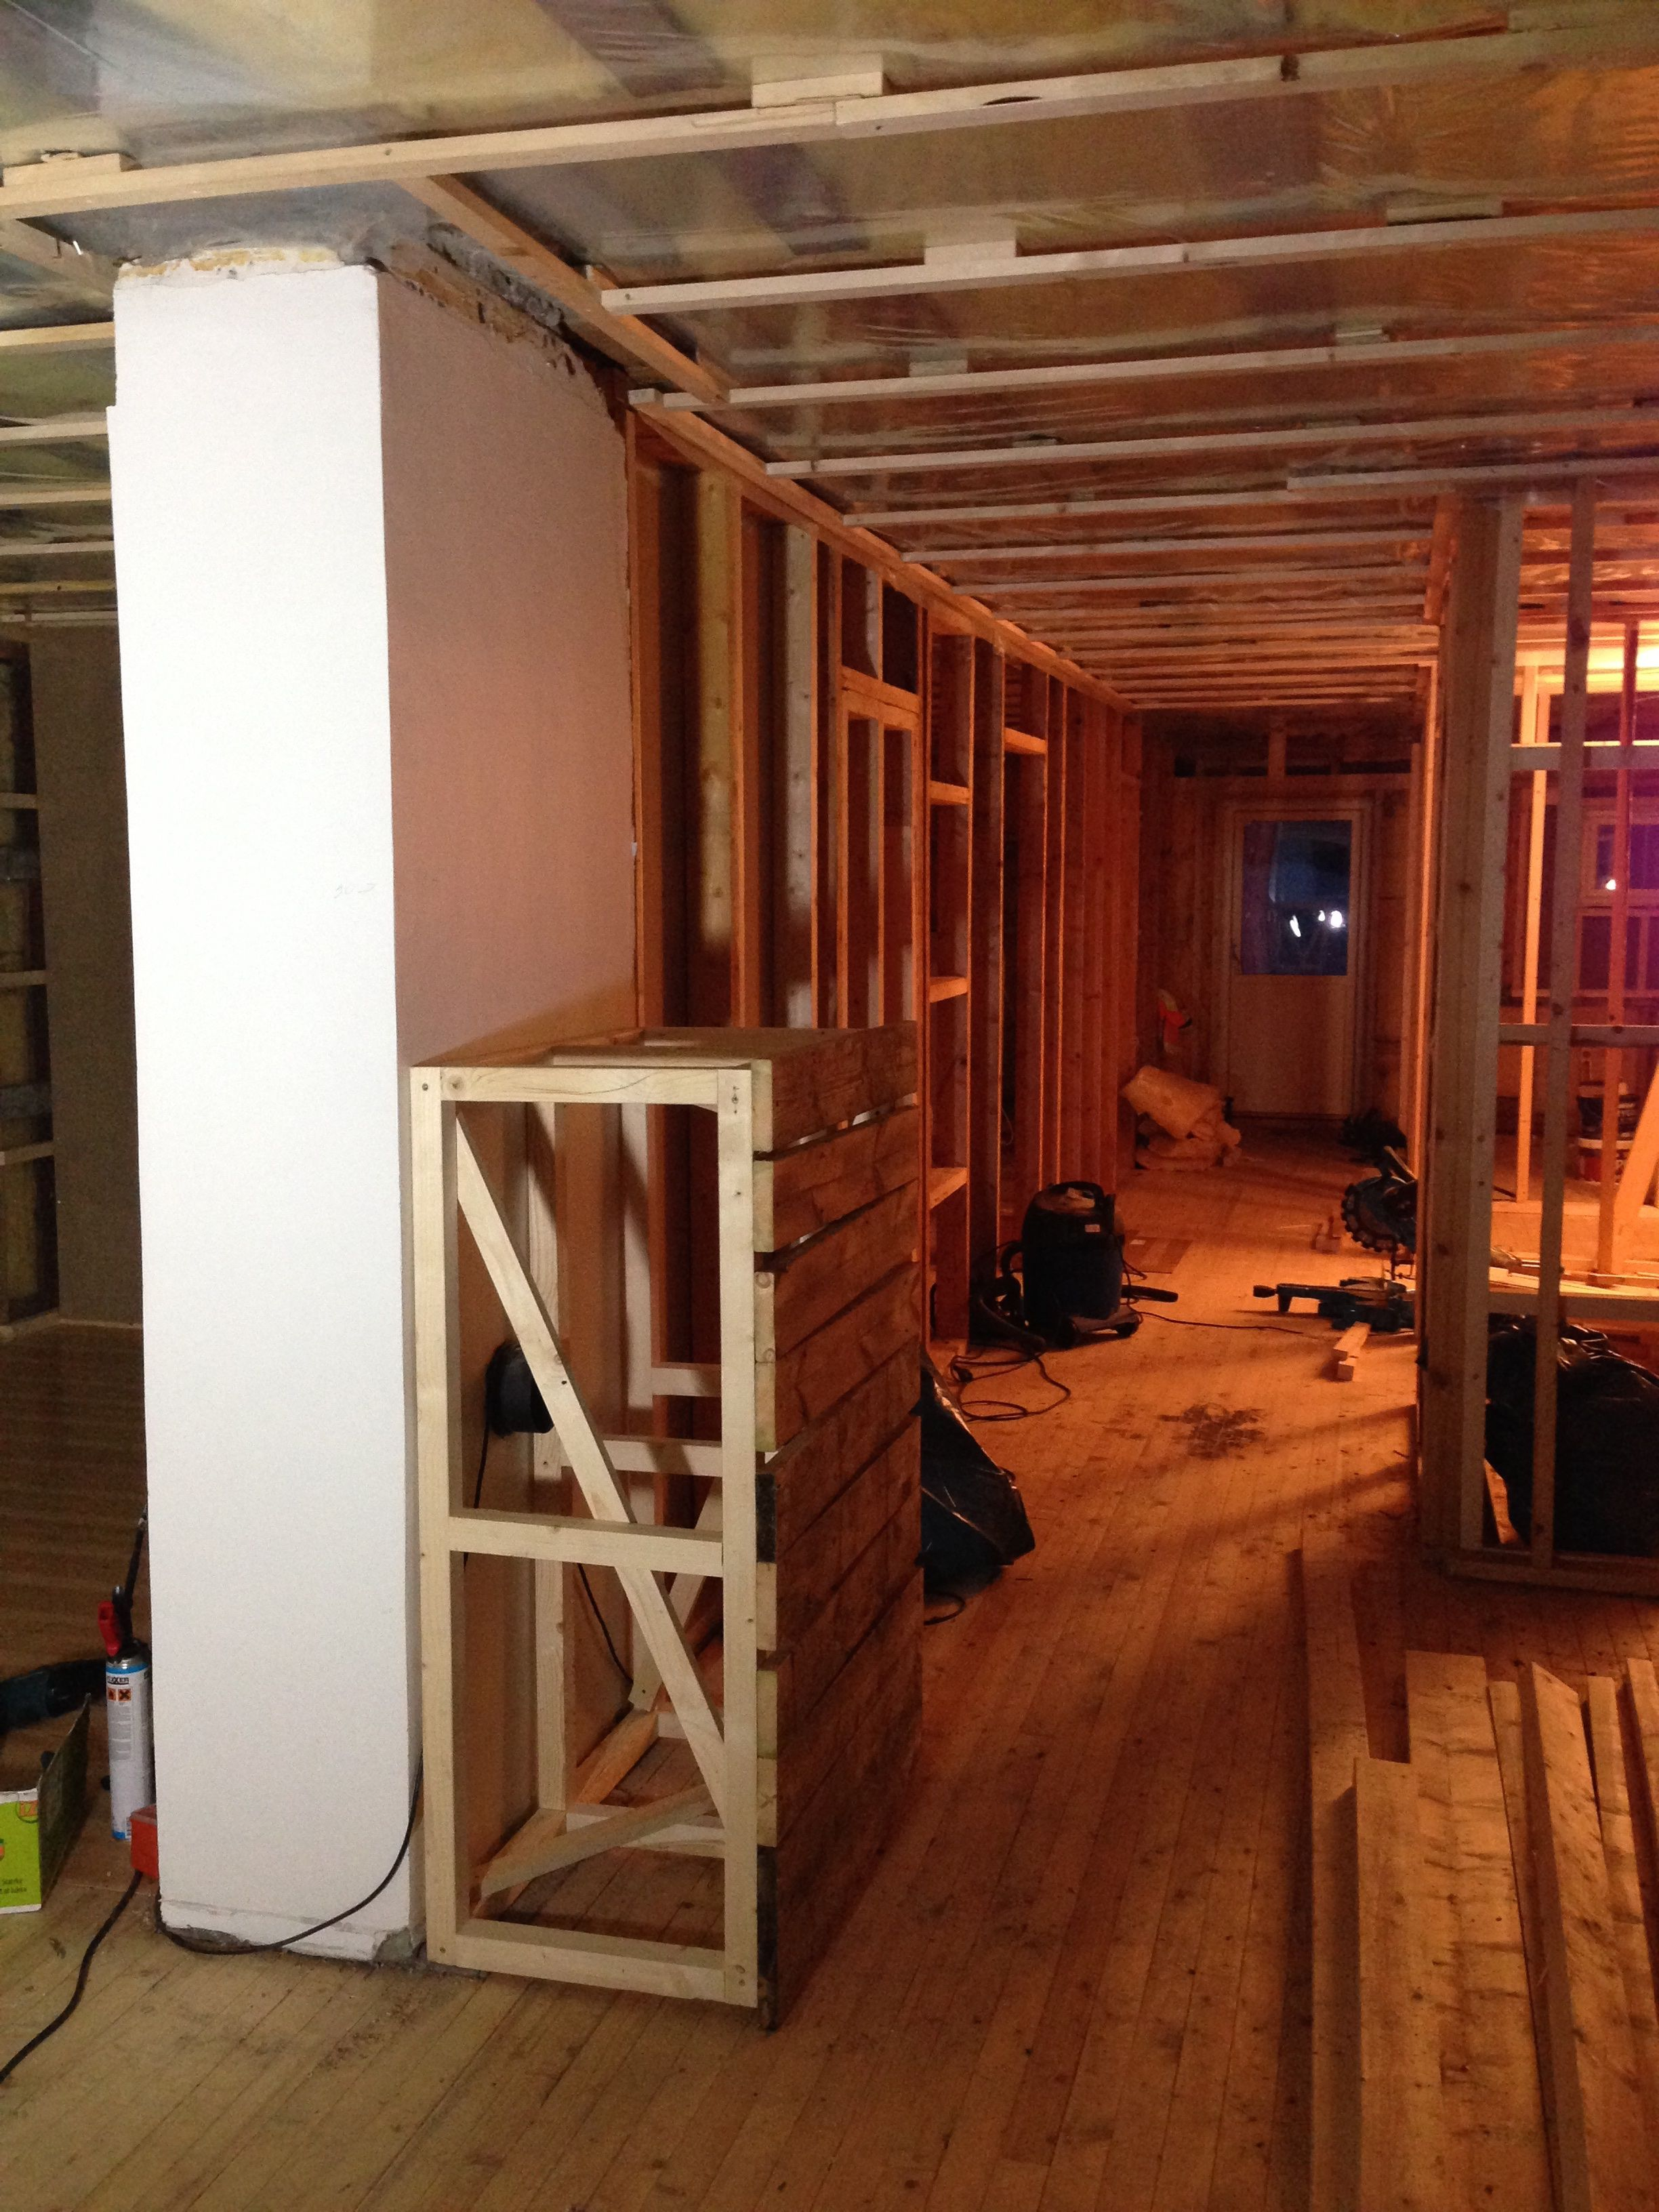 Wall and ceiling ready for insulation.